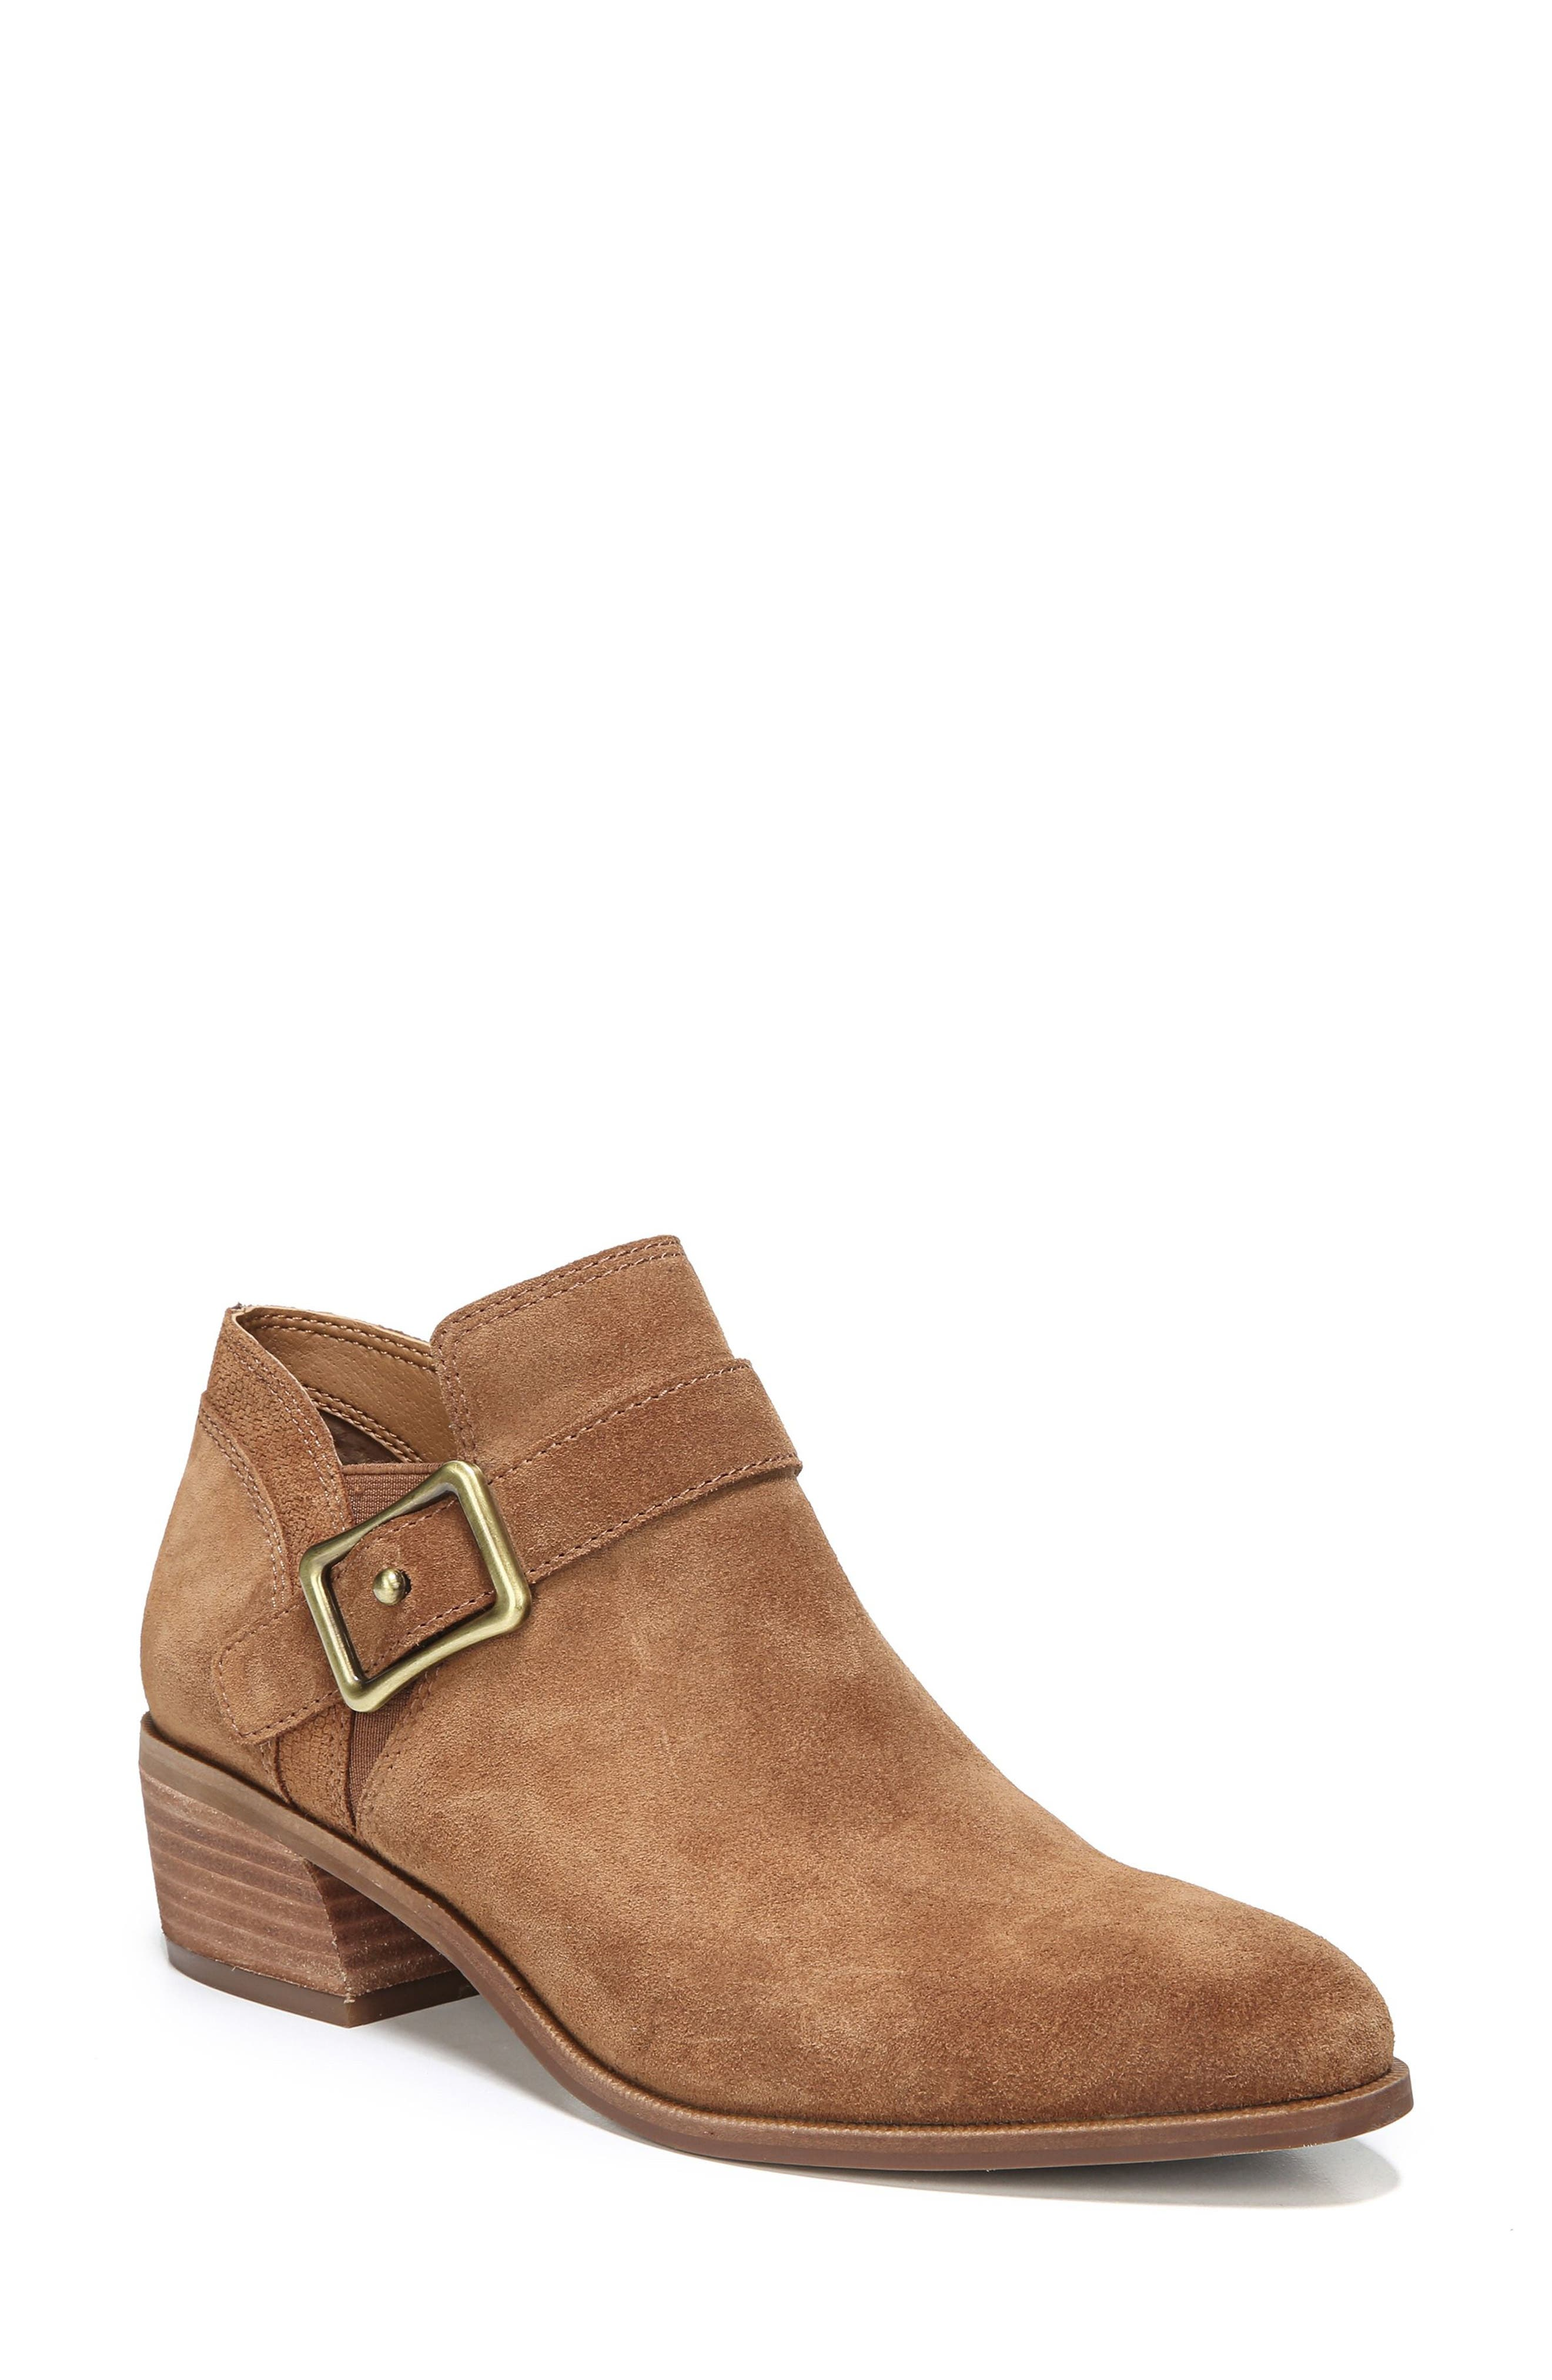 Penna Bootie,                         Main,                         color, Whiskey Suede